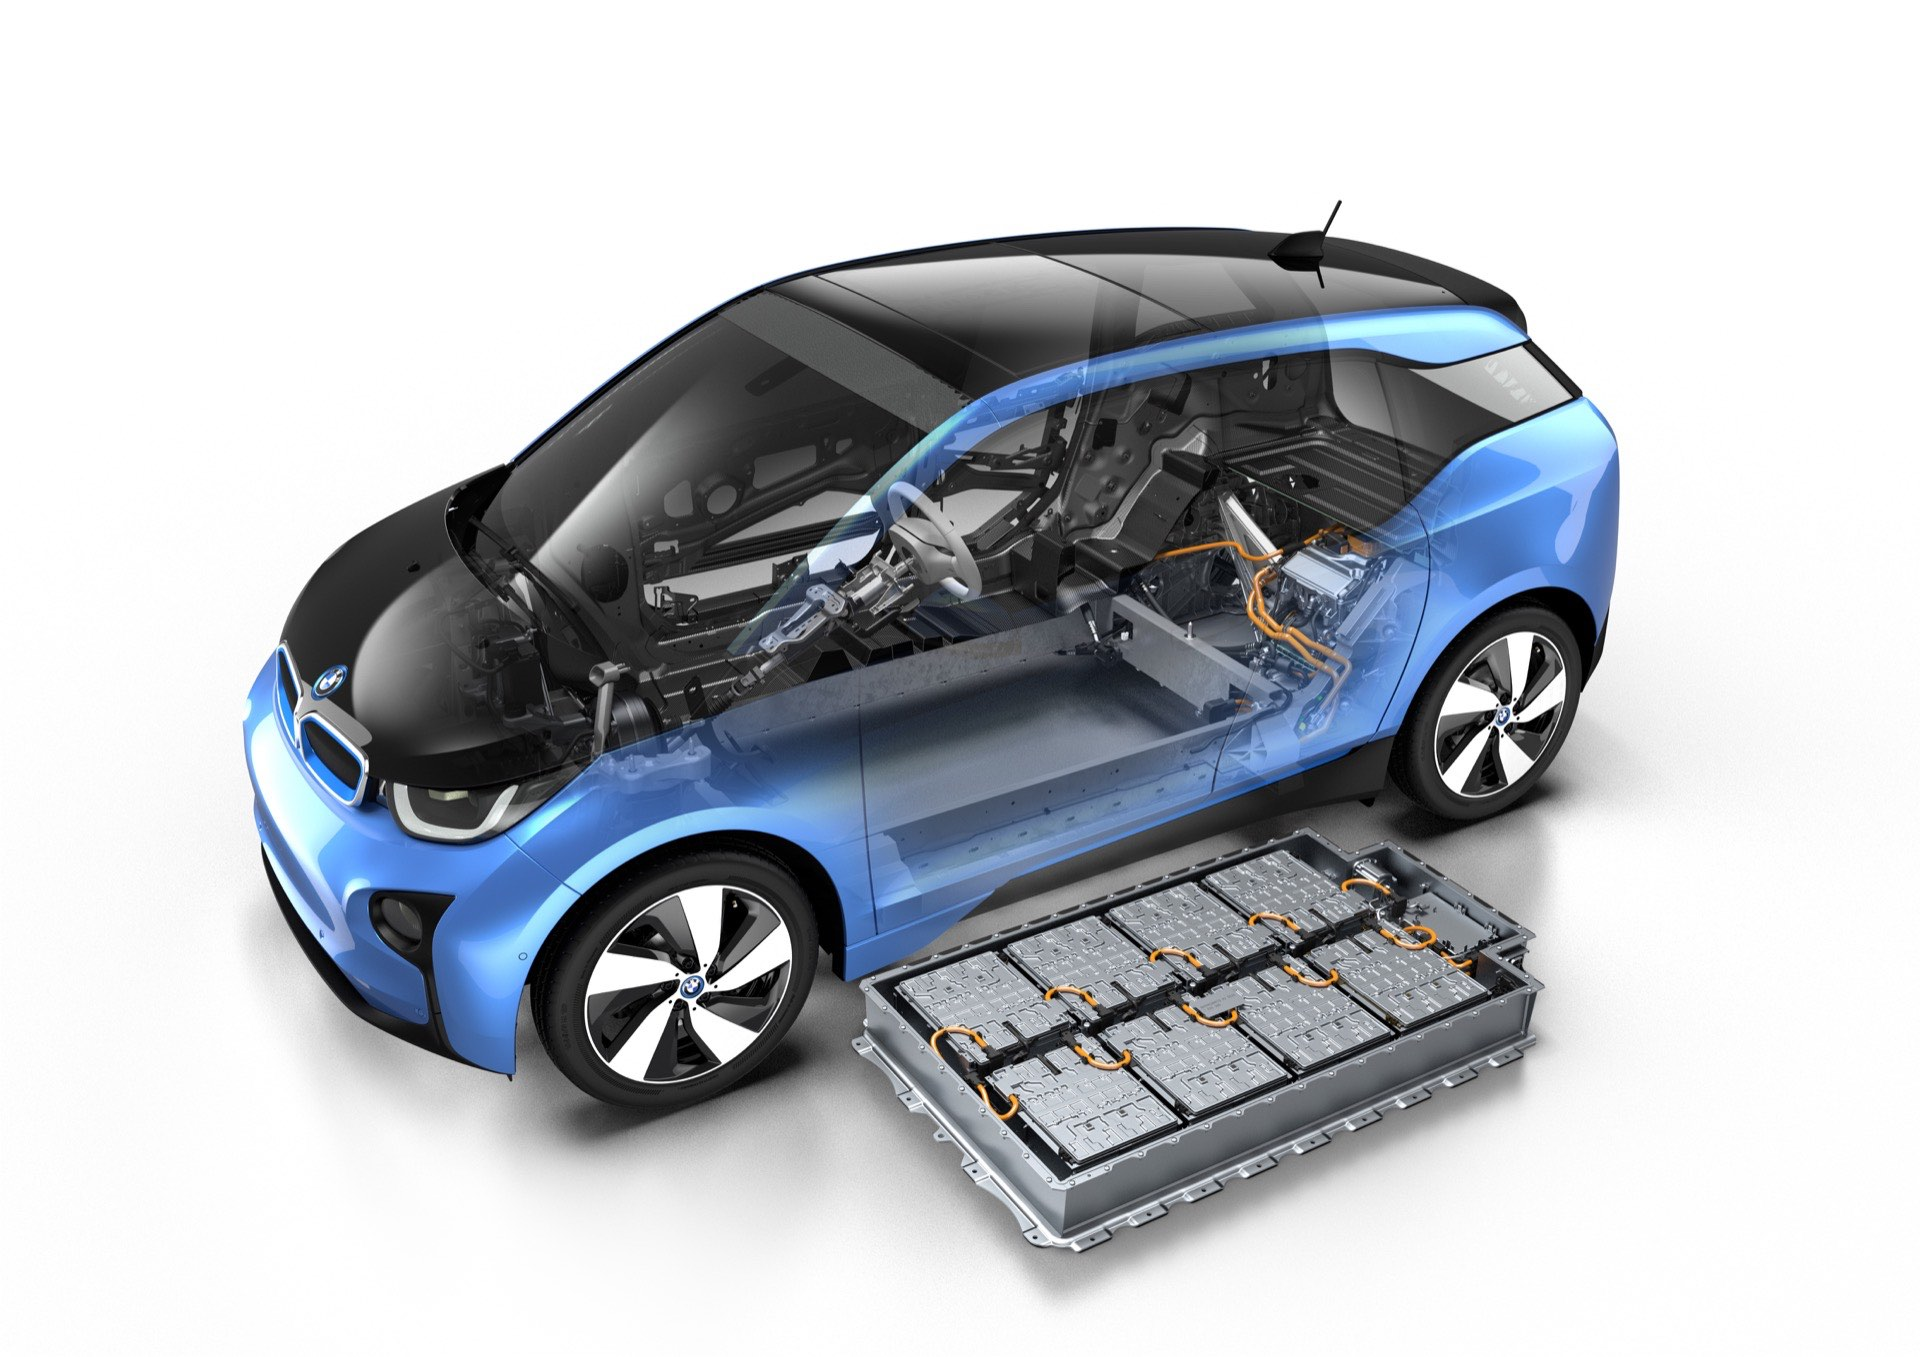 BMW i3 New Battery Update with 94Ah for More Range